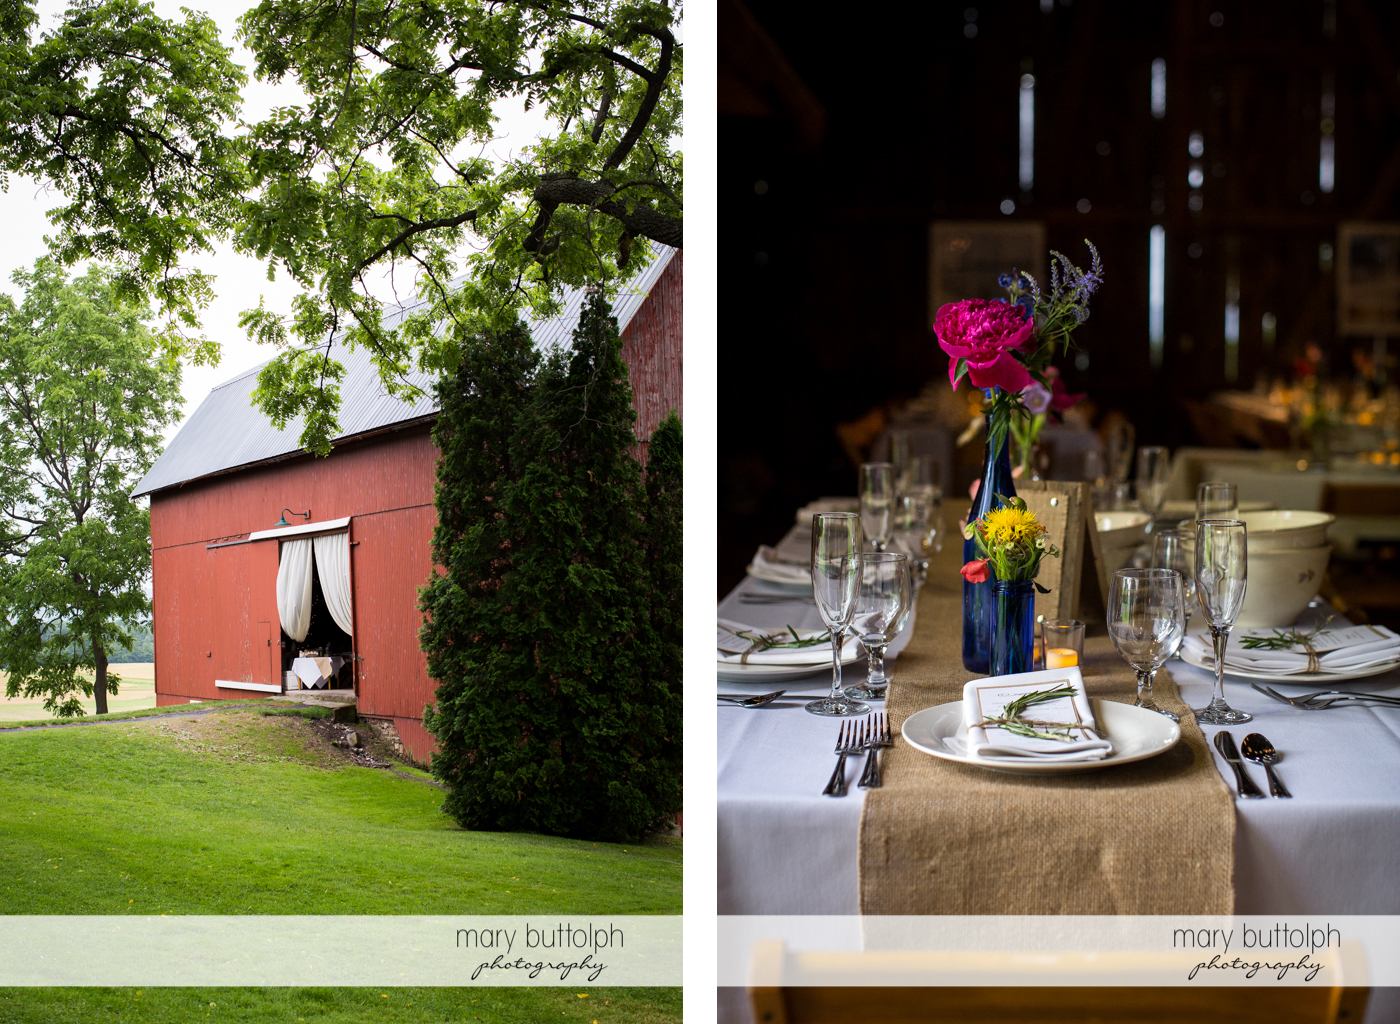 Entrance to the wedding venue and one of the tables at Mandana Barn Wedding